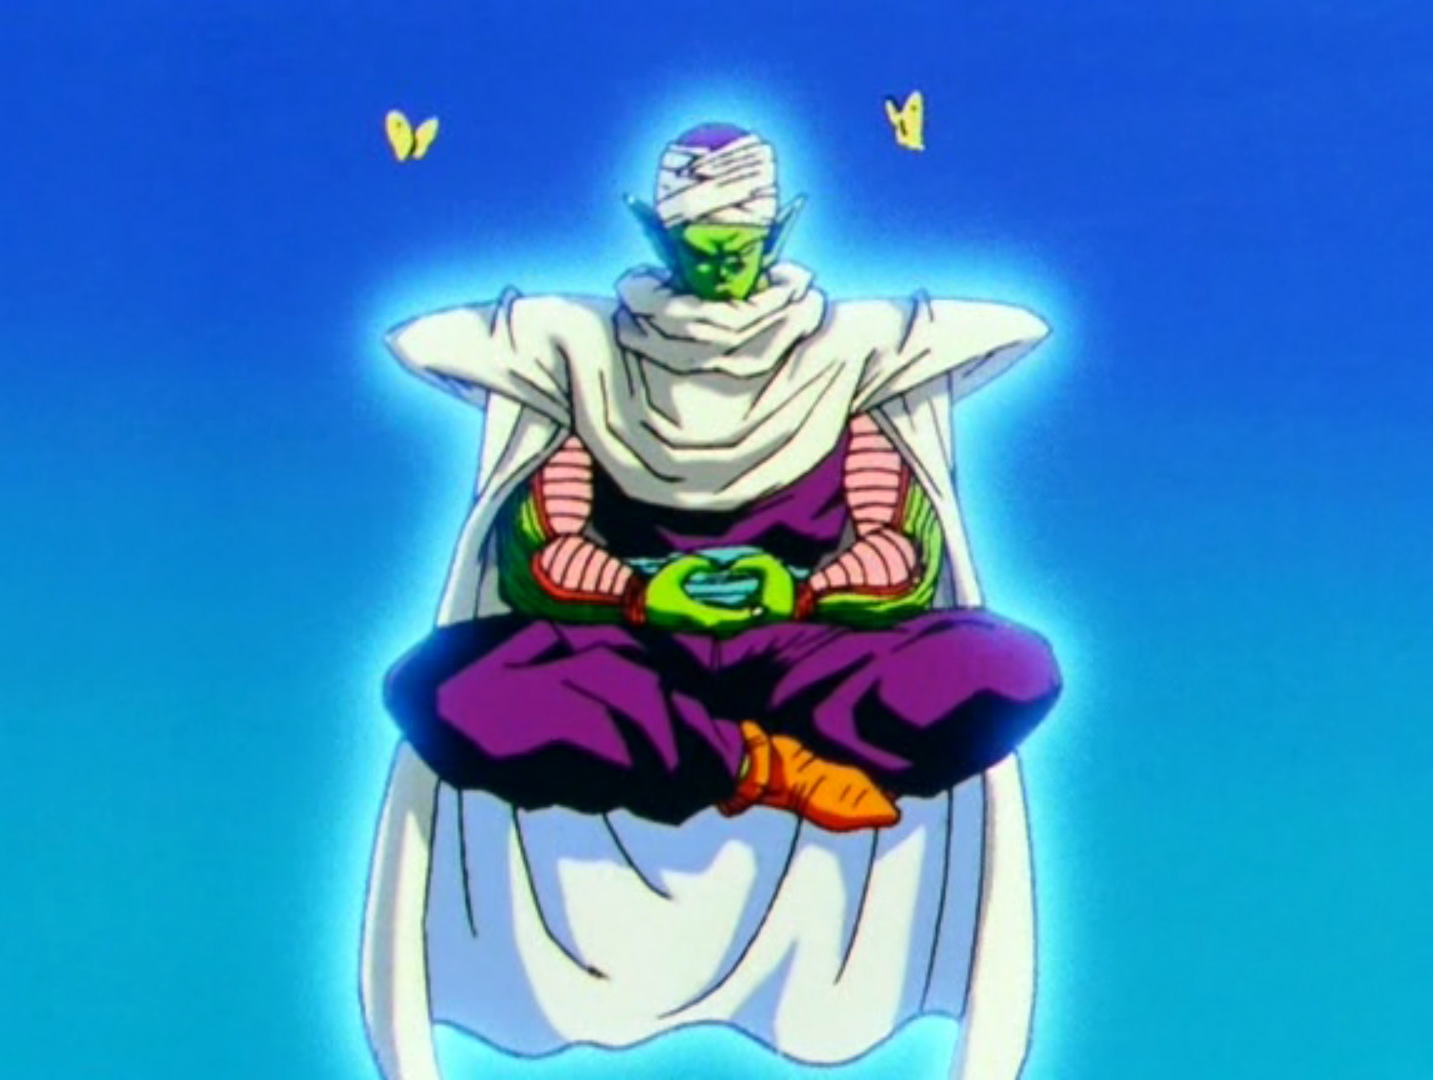 Super Namek